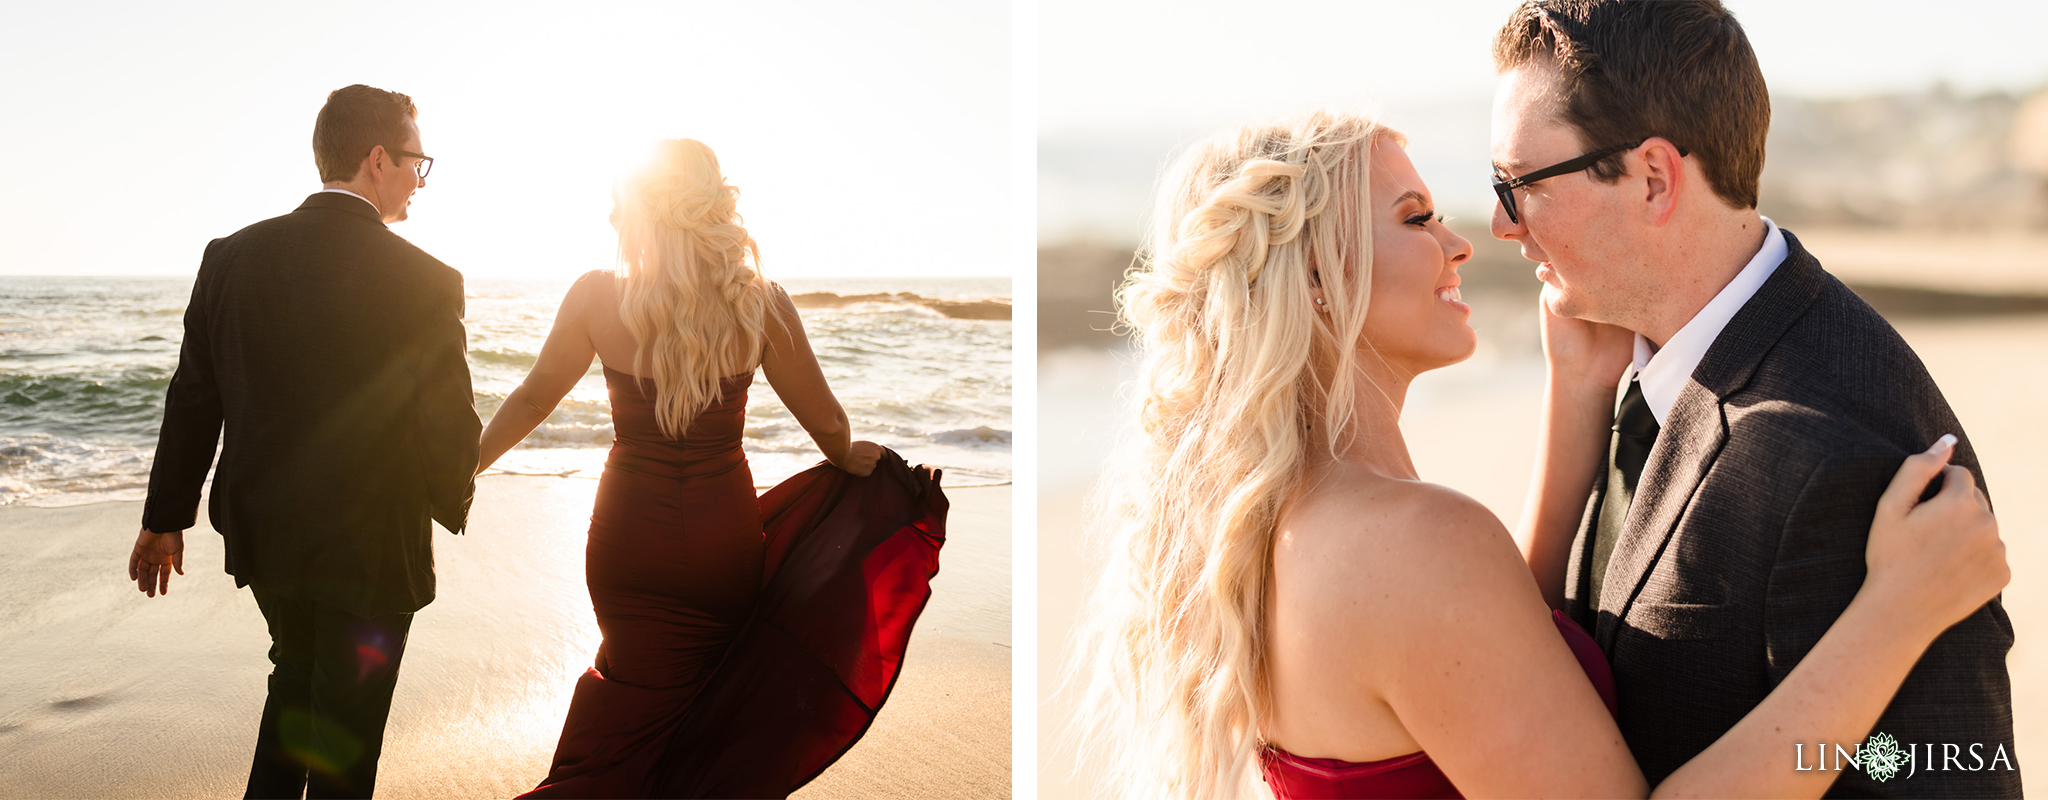 09 Orange County Sunset Beach Engagement Photography